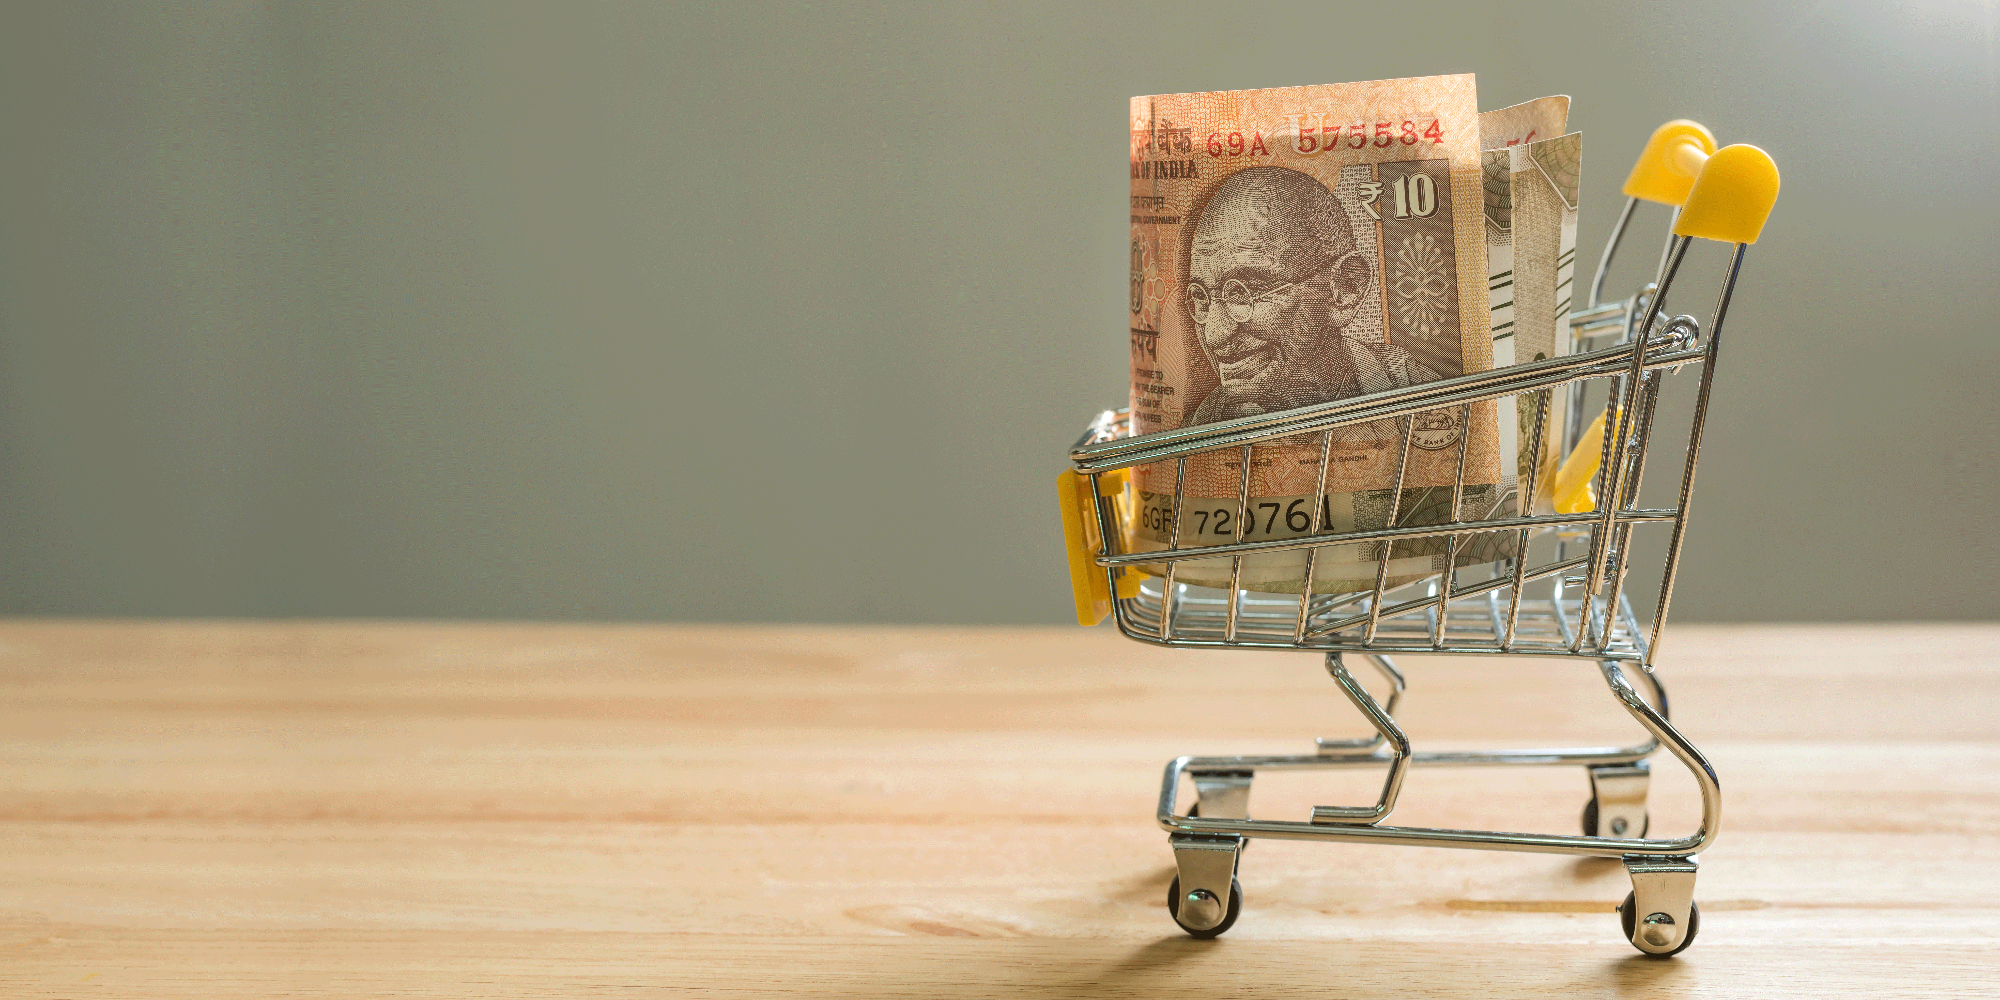 Indian rupee bills in mini shopping cart on a wooden desktop